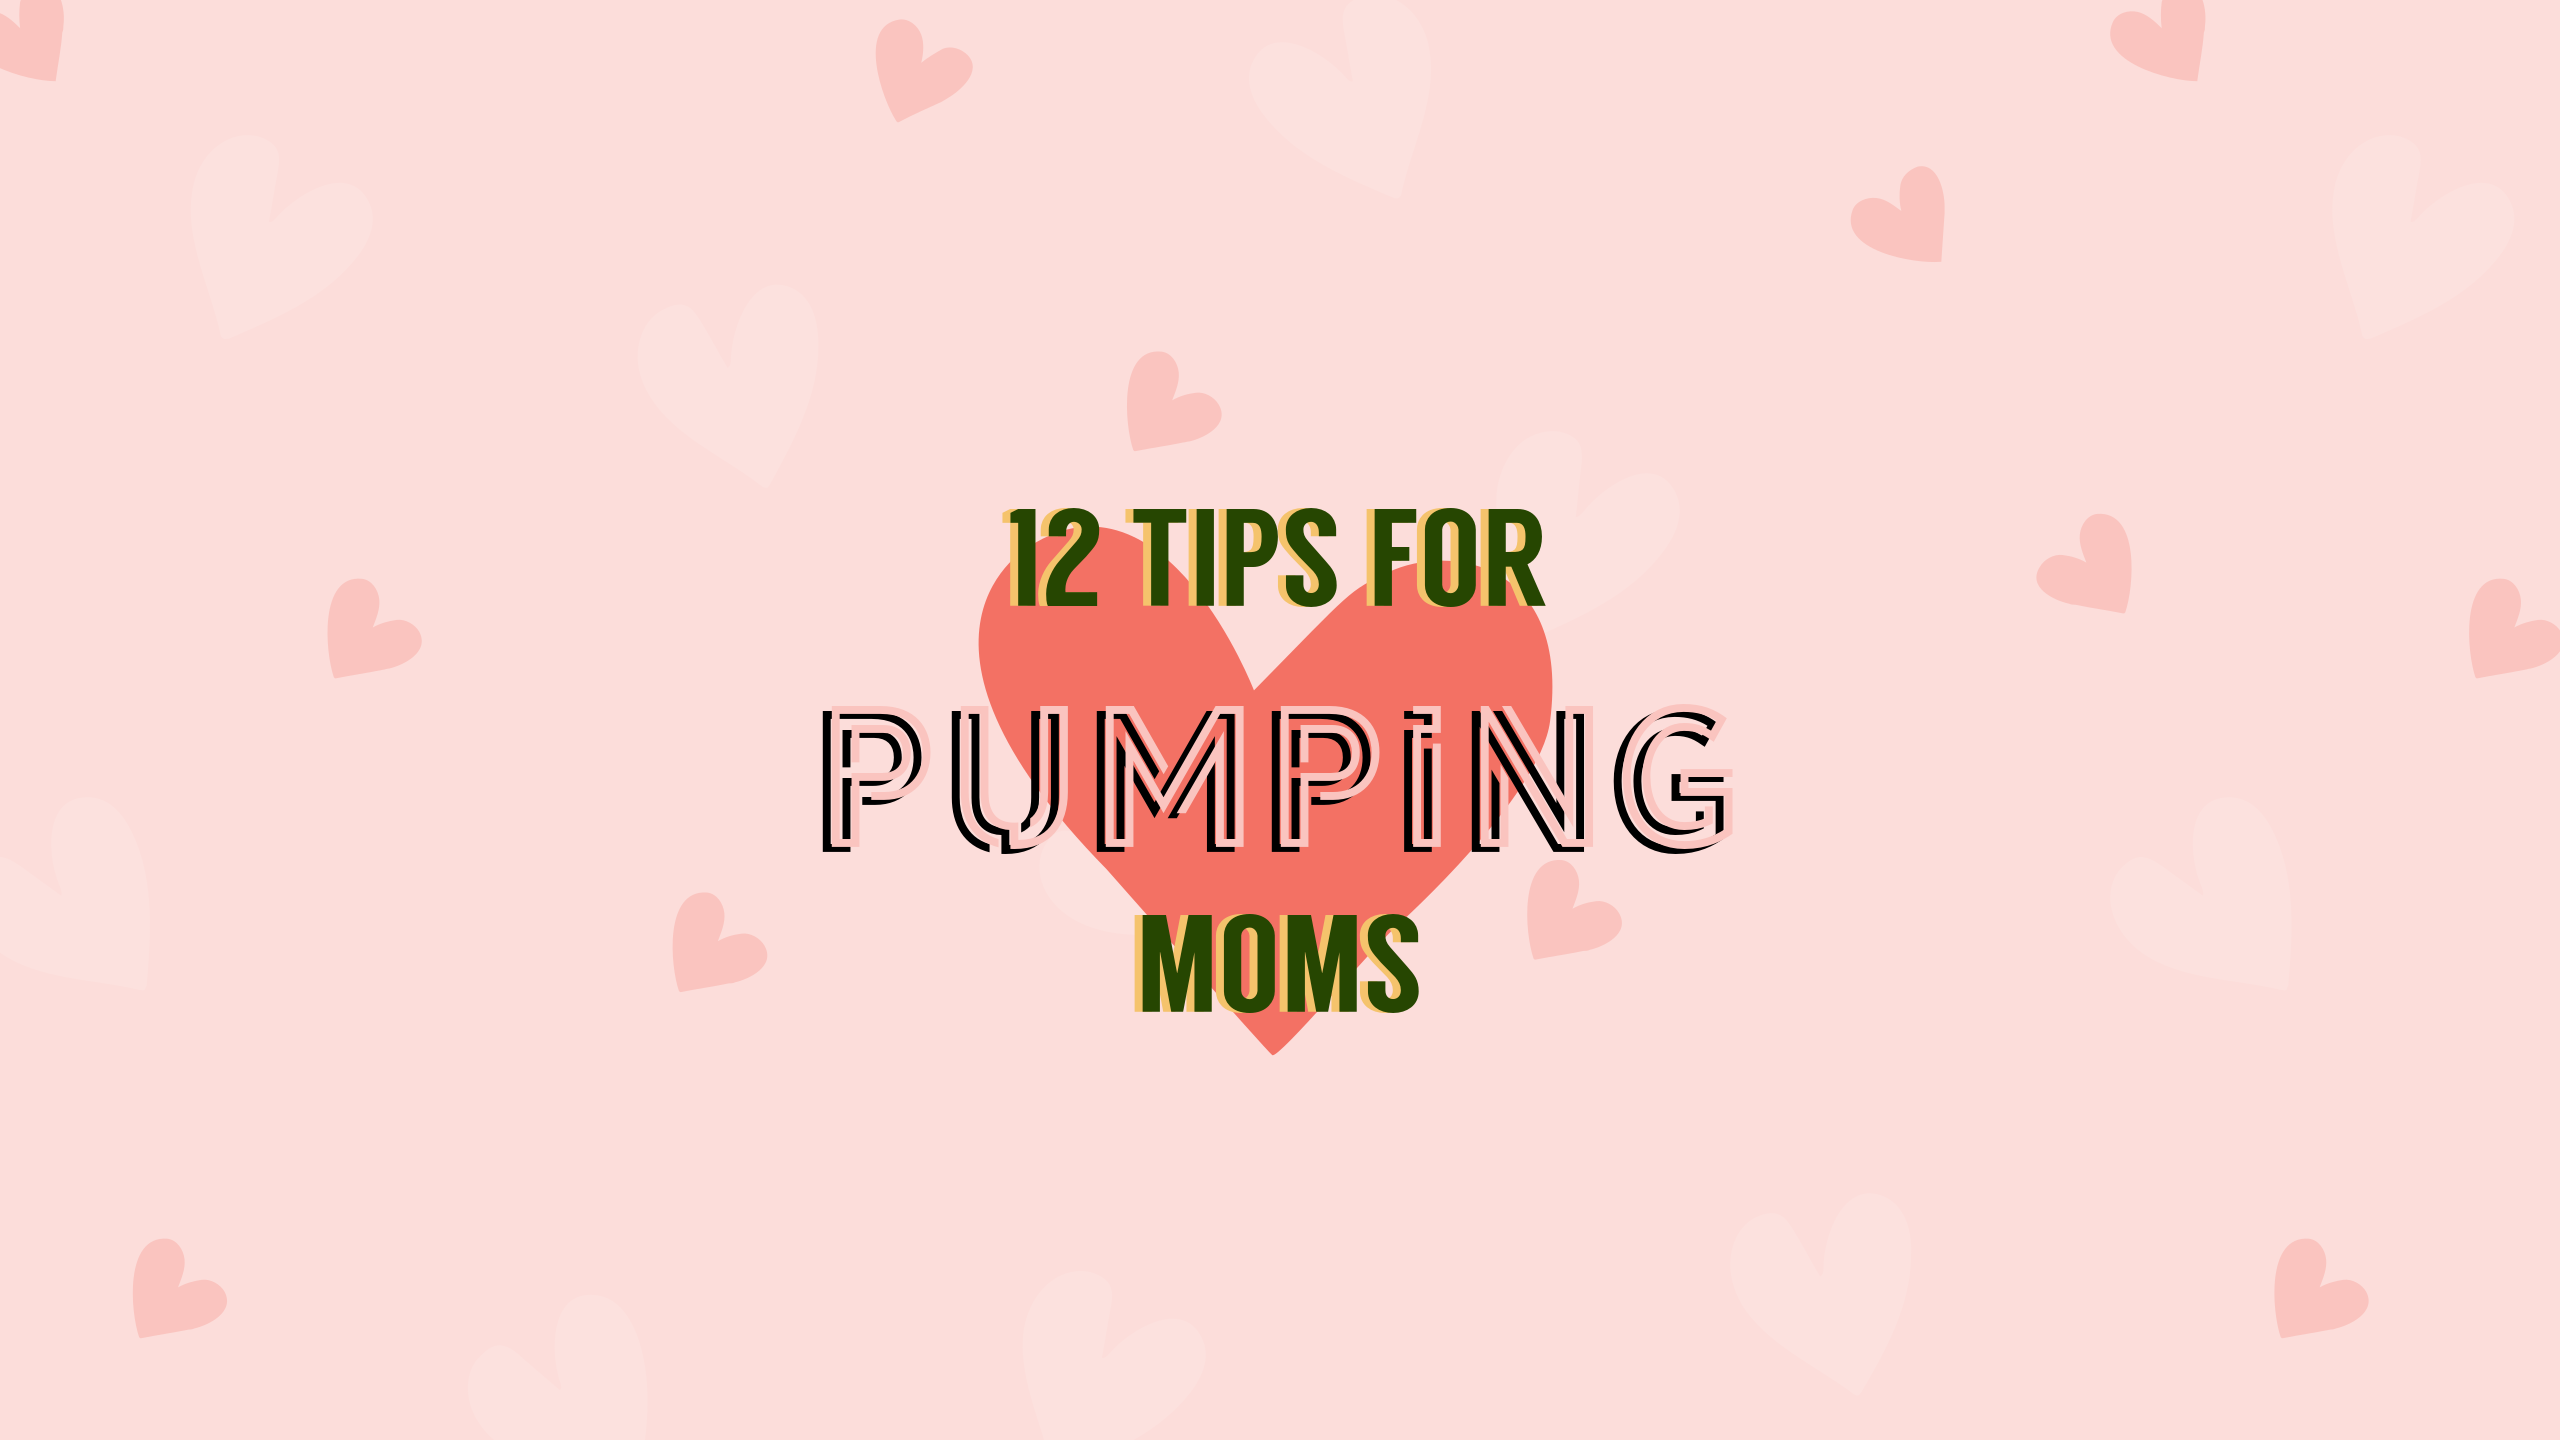 12 Breast Pumping Tips And Hacks That Will Make Your Life Easier